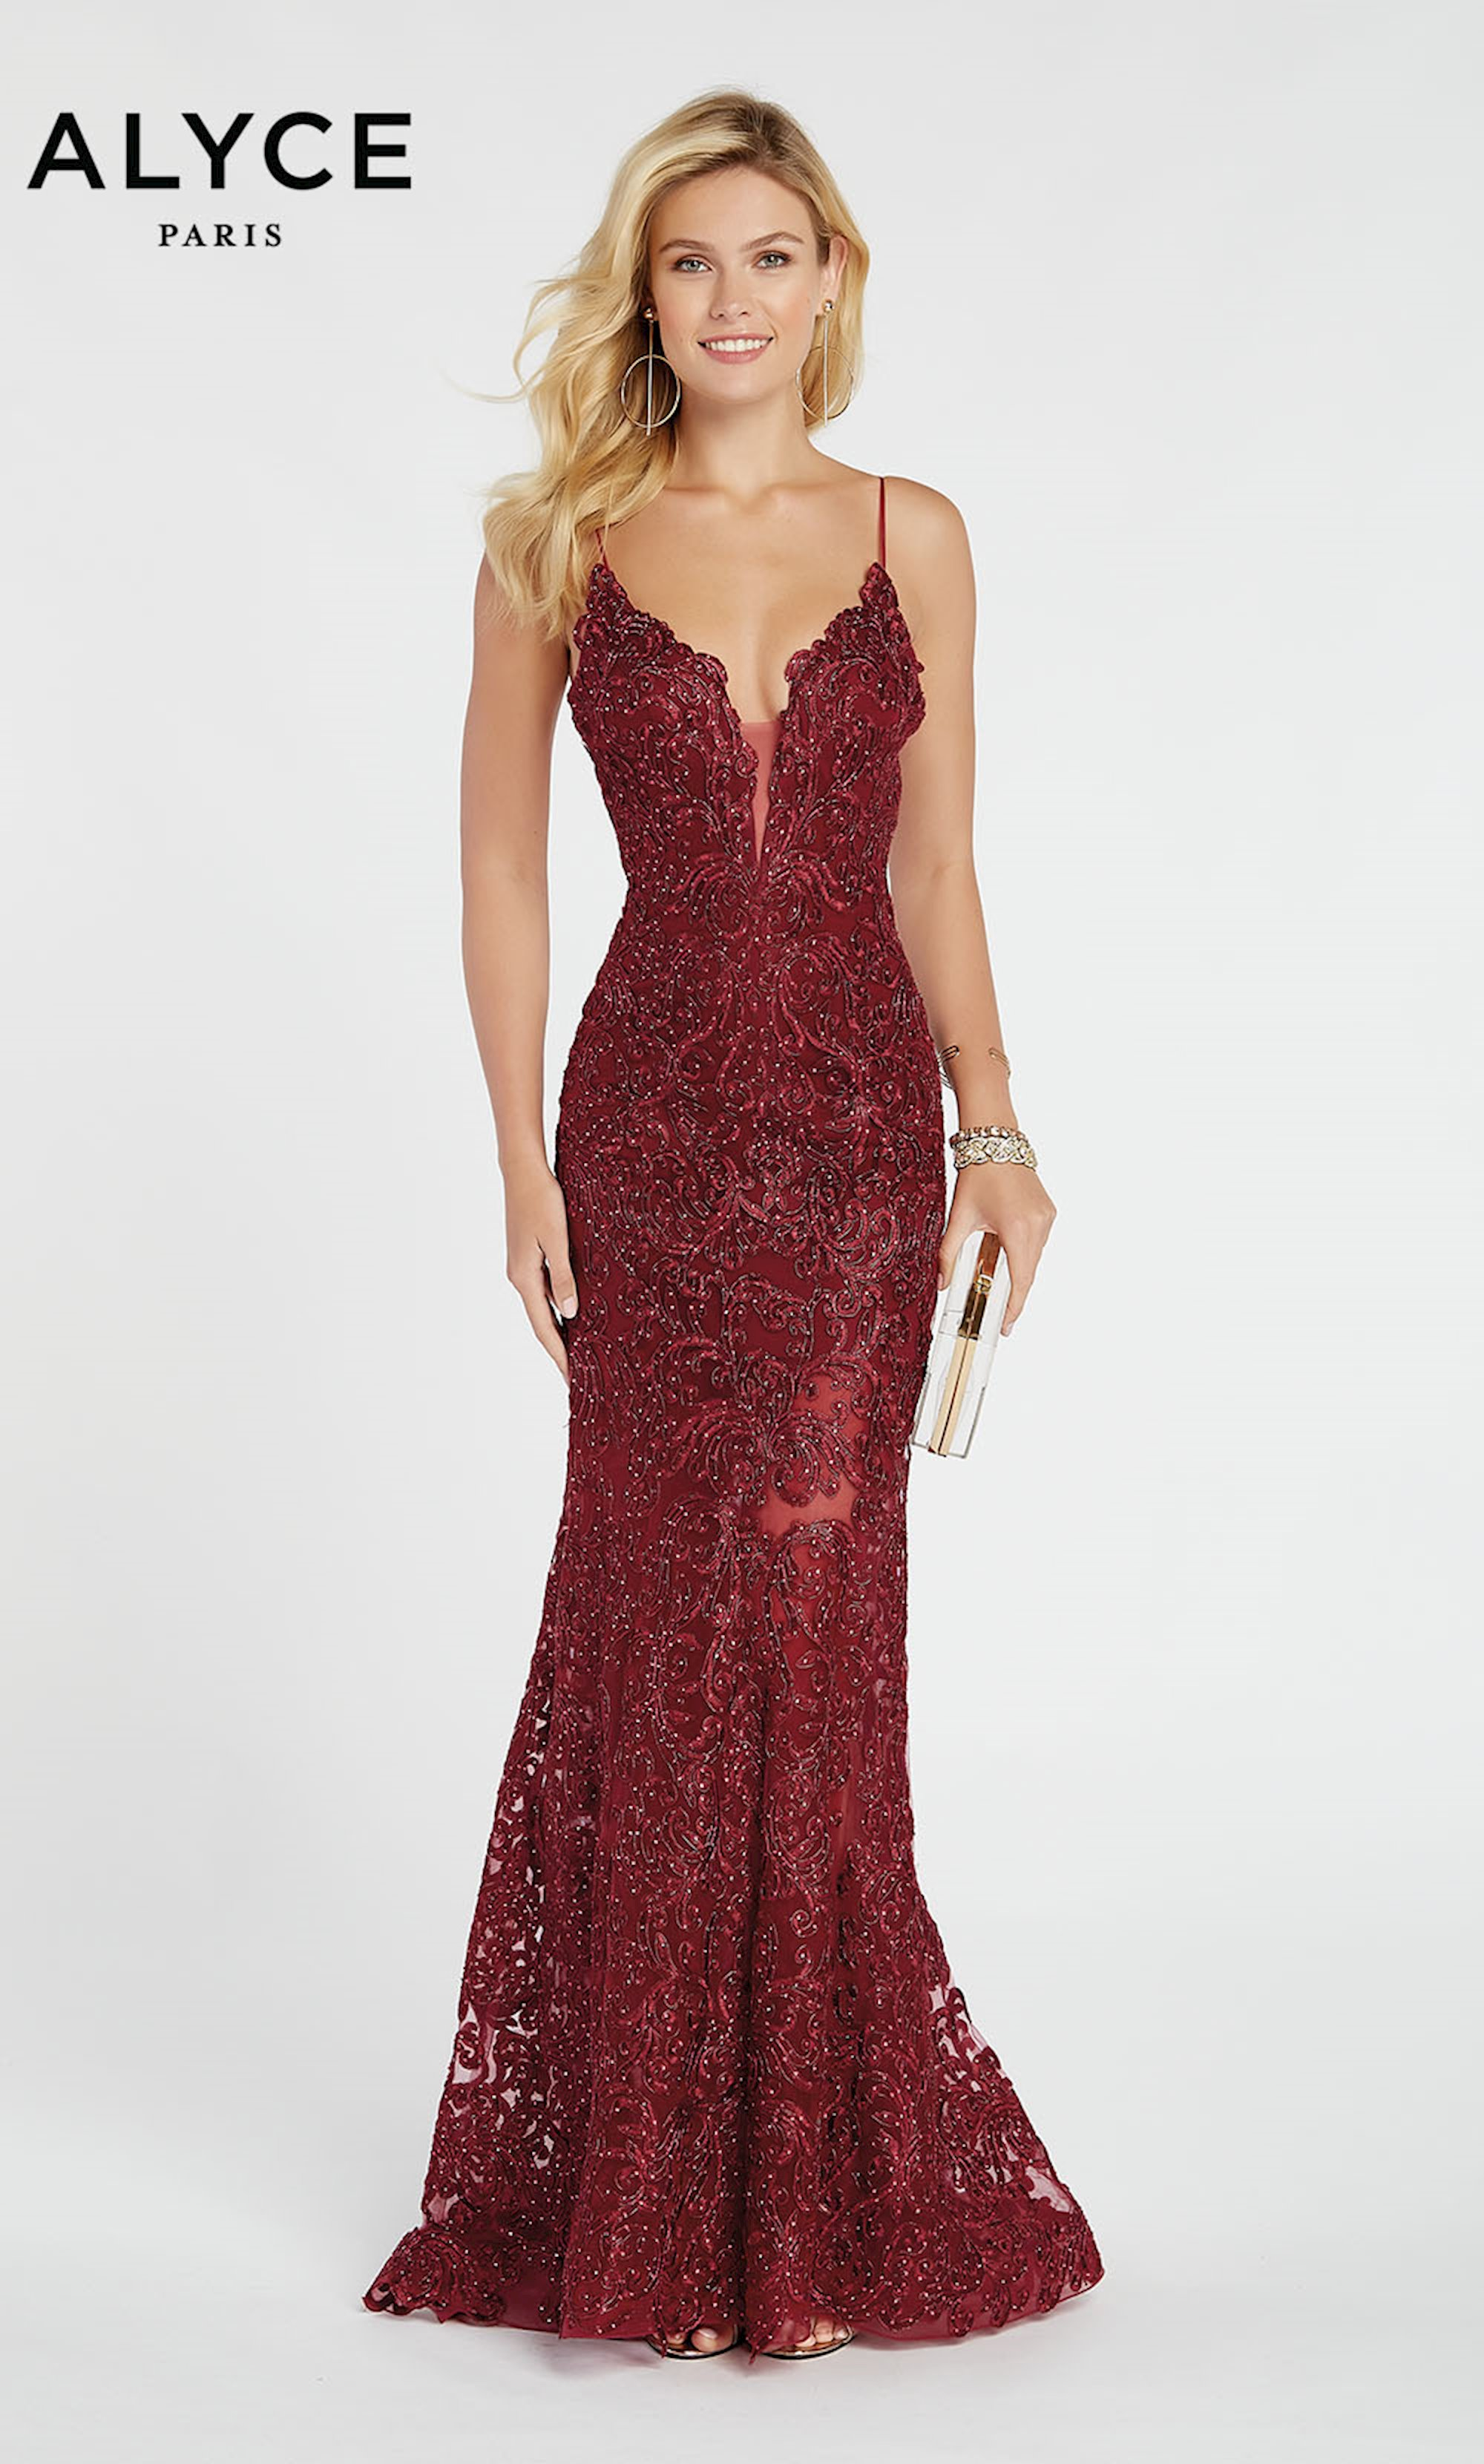 d40d9b12ccb Alyce Paris Prom Dresses 60492. Double tap to zoom